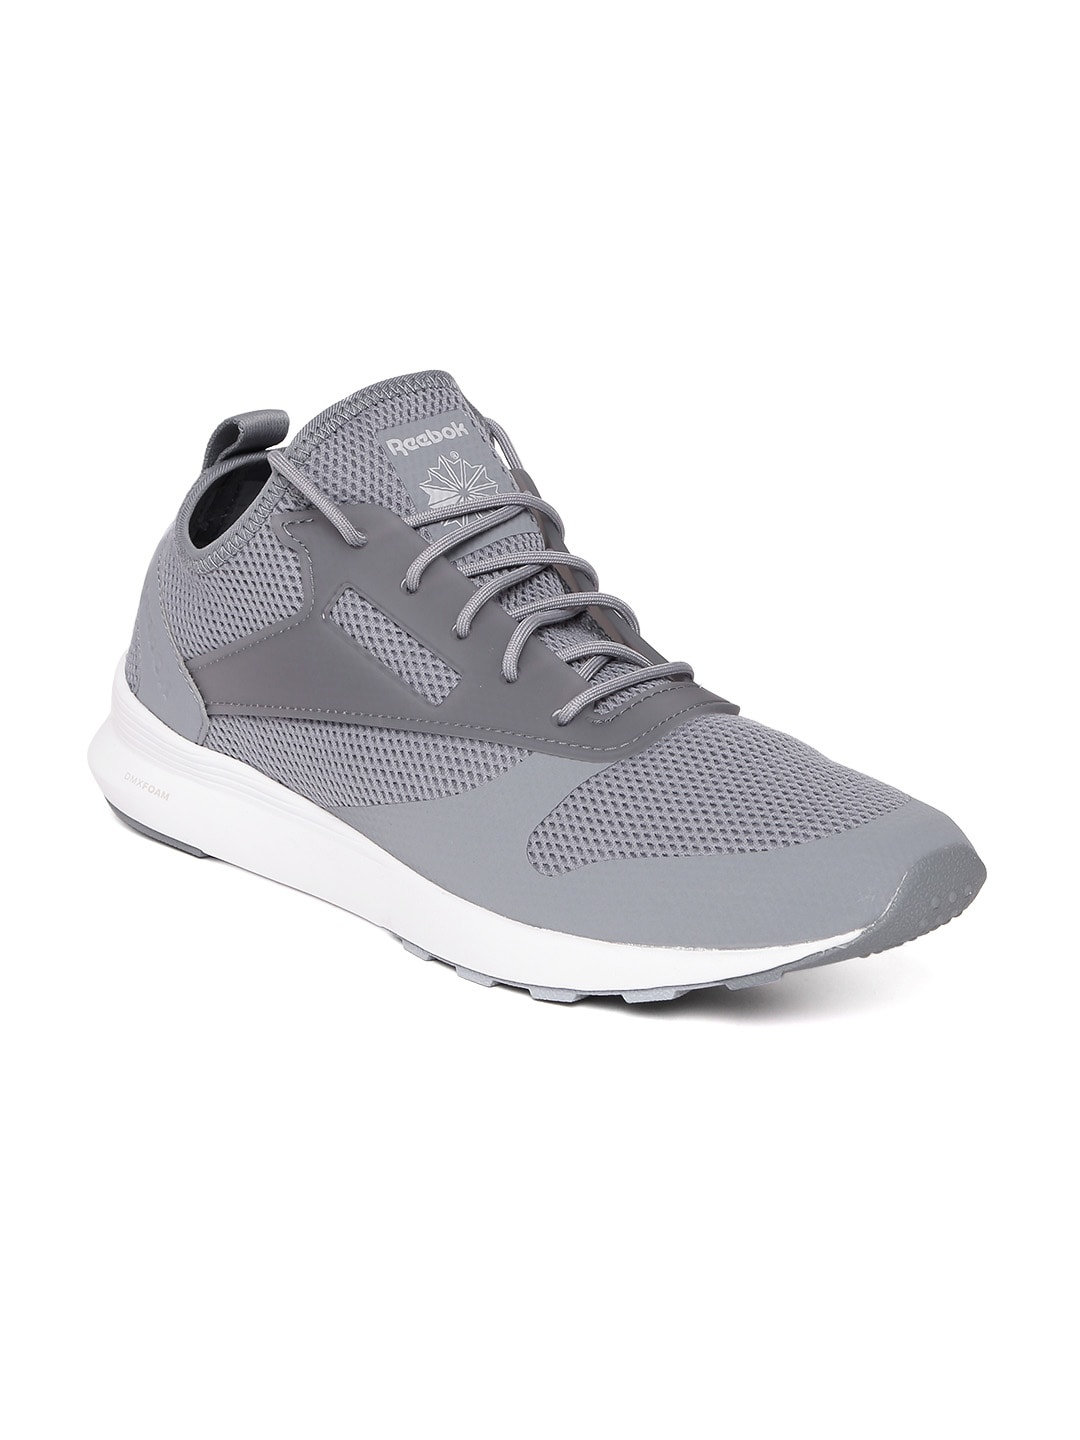 6b9bc1f0e6f48 Men Sports Reebok Socks Shoes - Buy Men Sports Reebok Socks Shoes online in  India